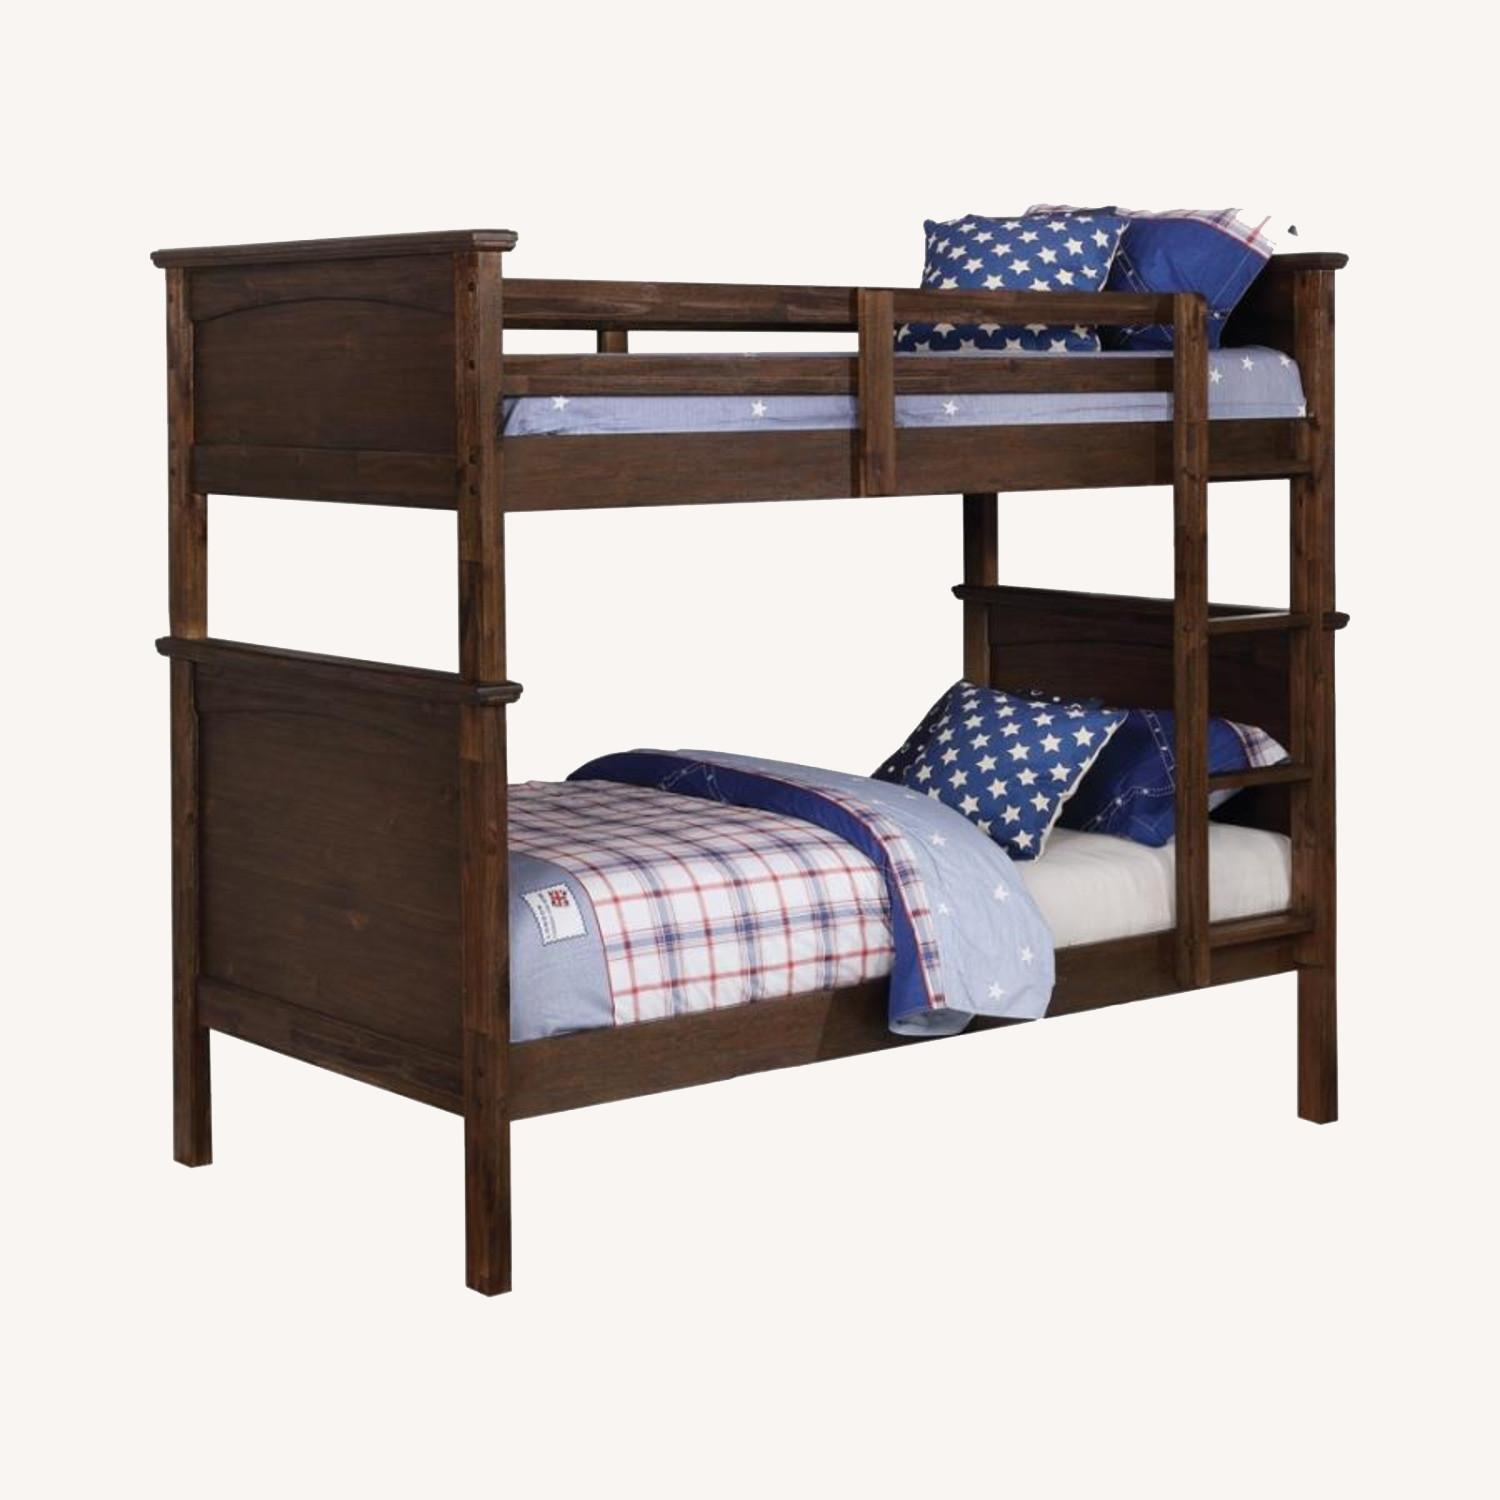 Twin Over Twin Bunk Bed In Country Brown Finish - image-3